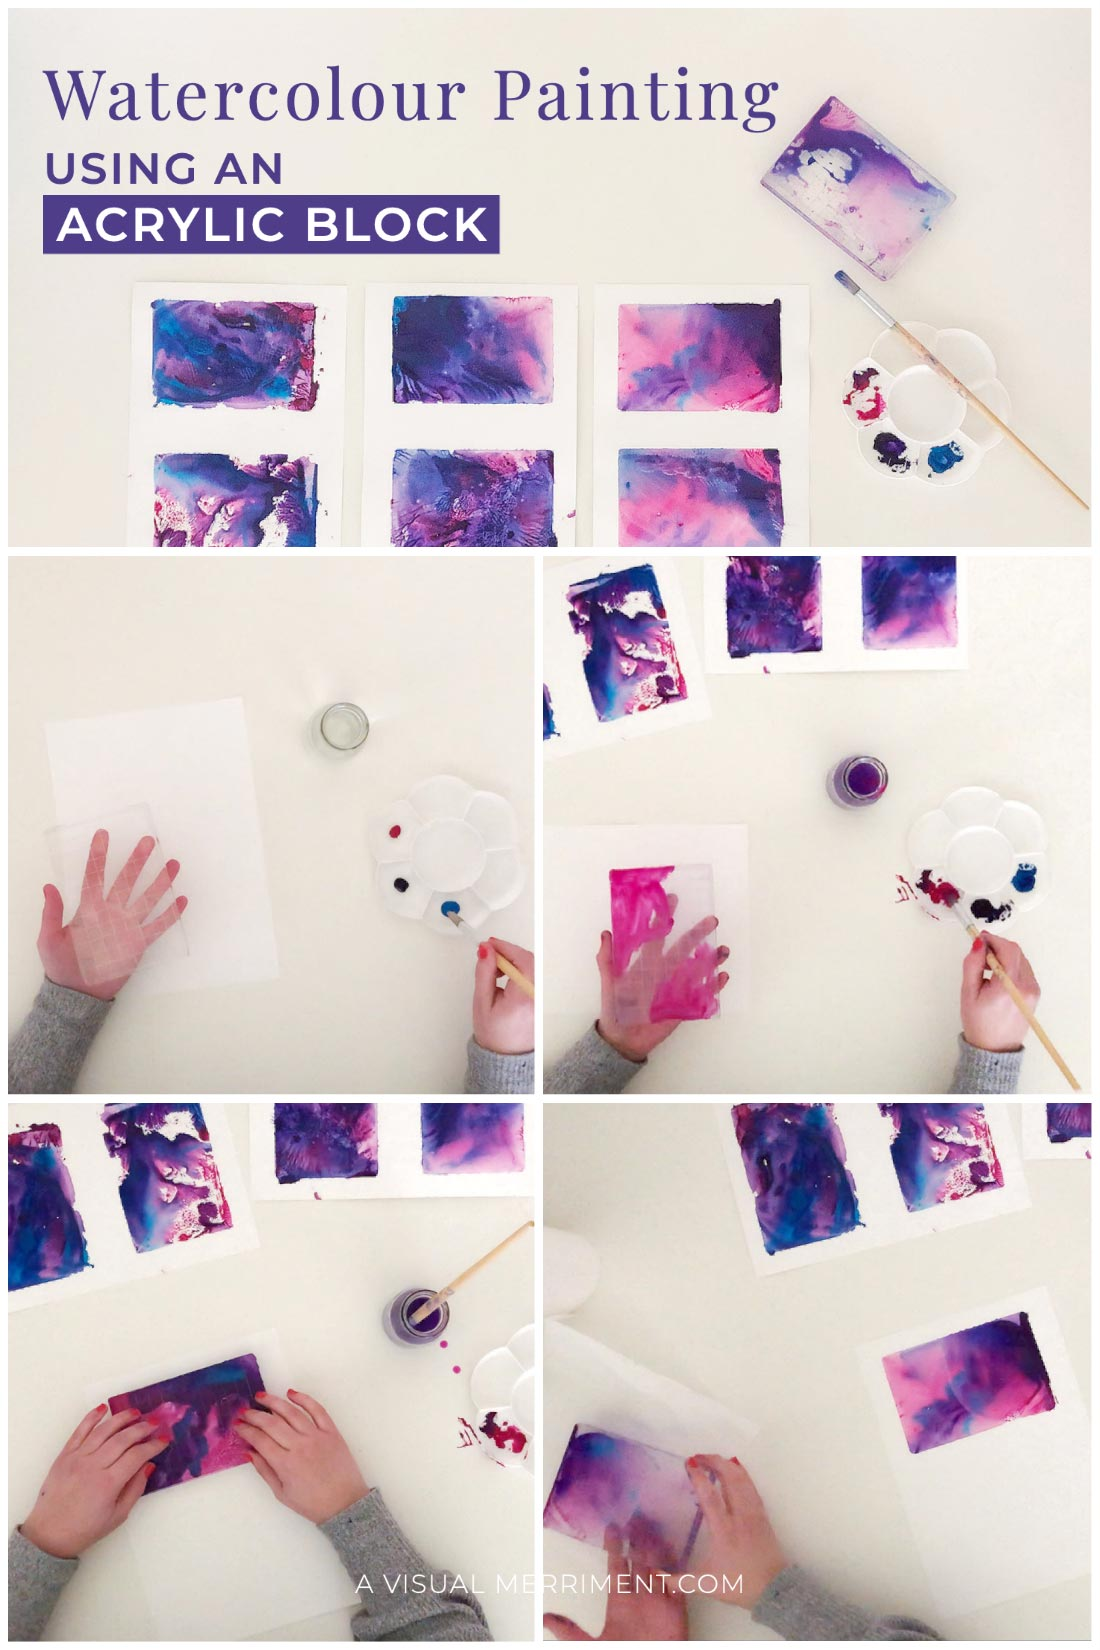 steps on painting watercolour art